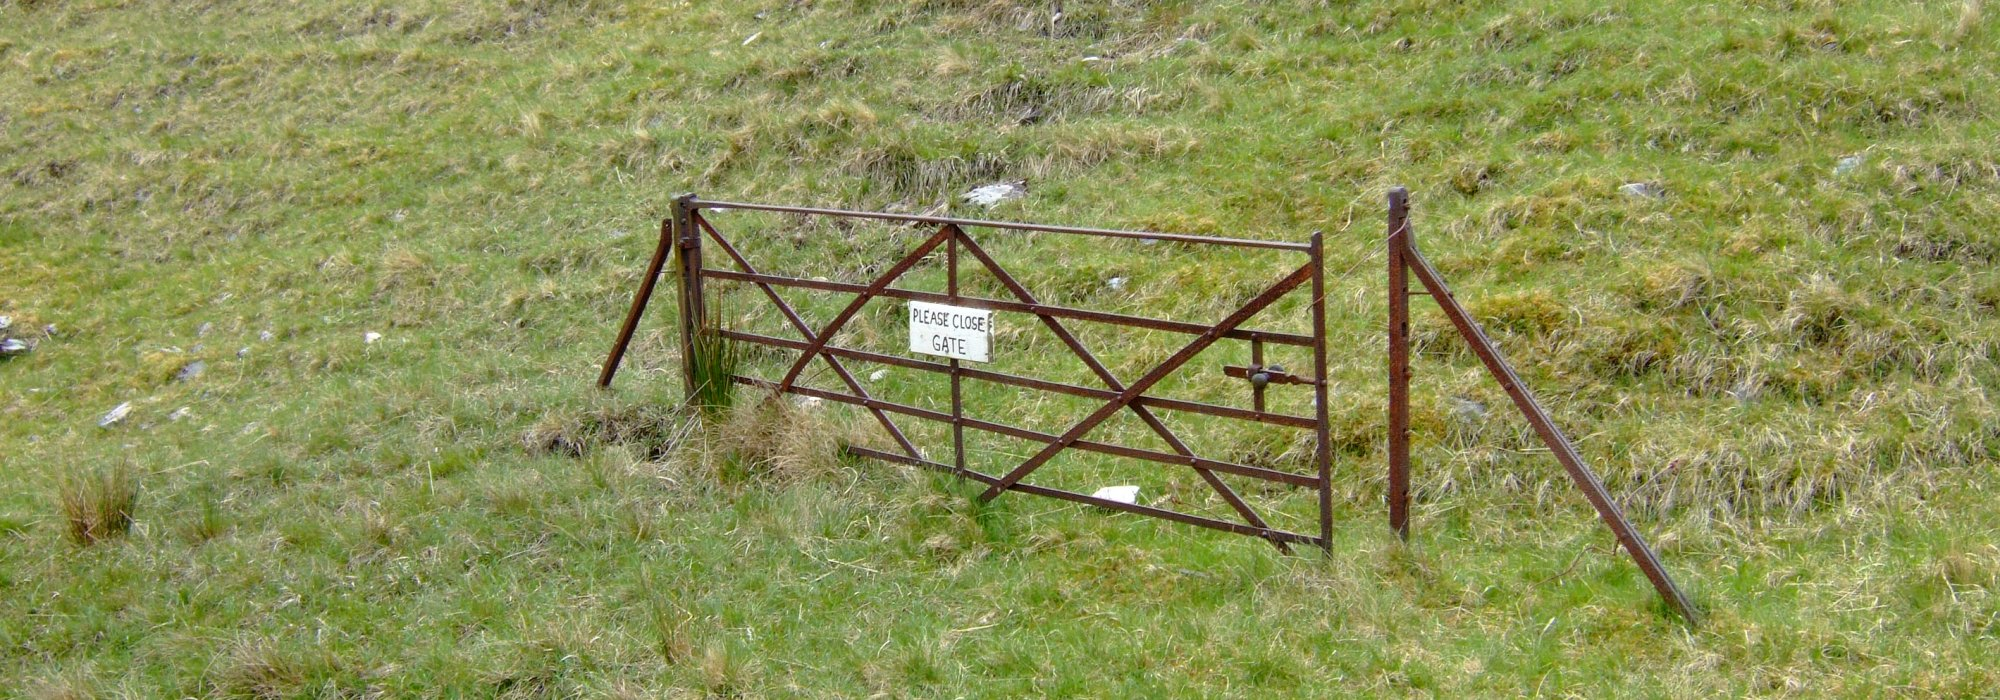 "Nomination for the ""Most Pointless Gate"" award and ""Most Pointless Sign"" award"